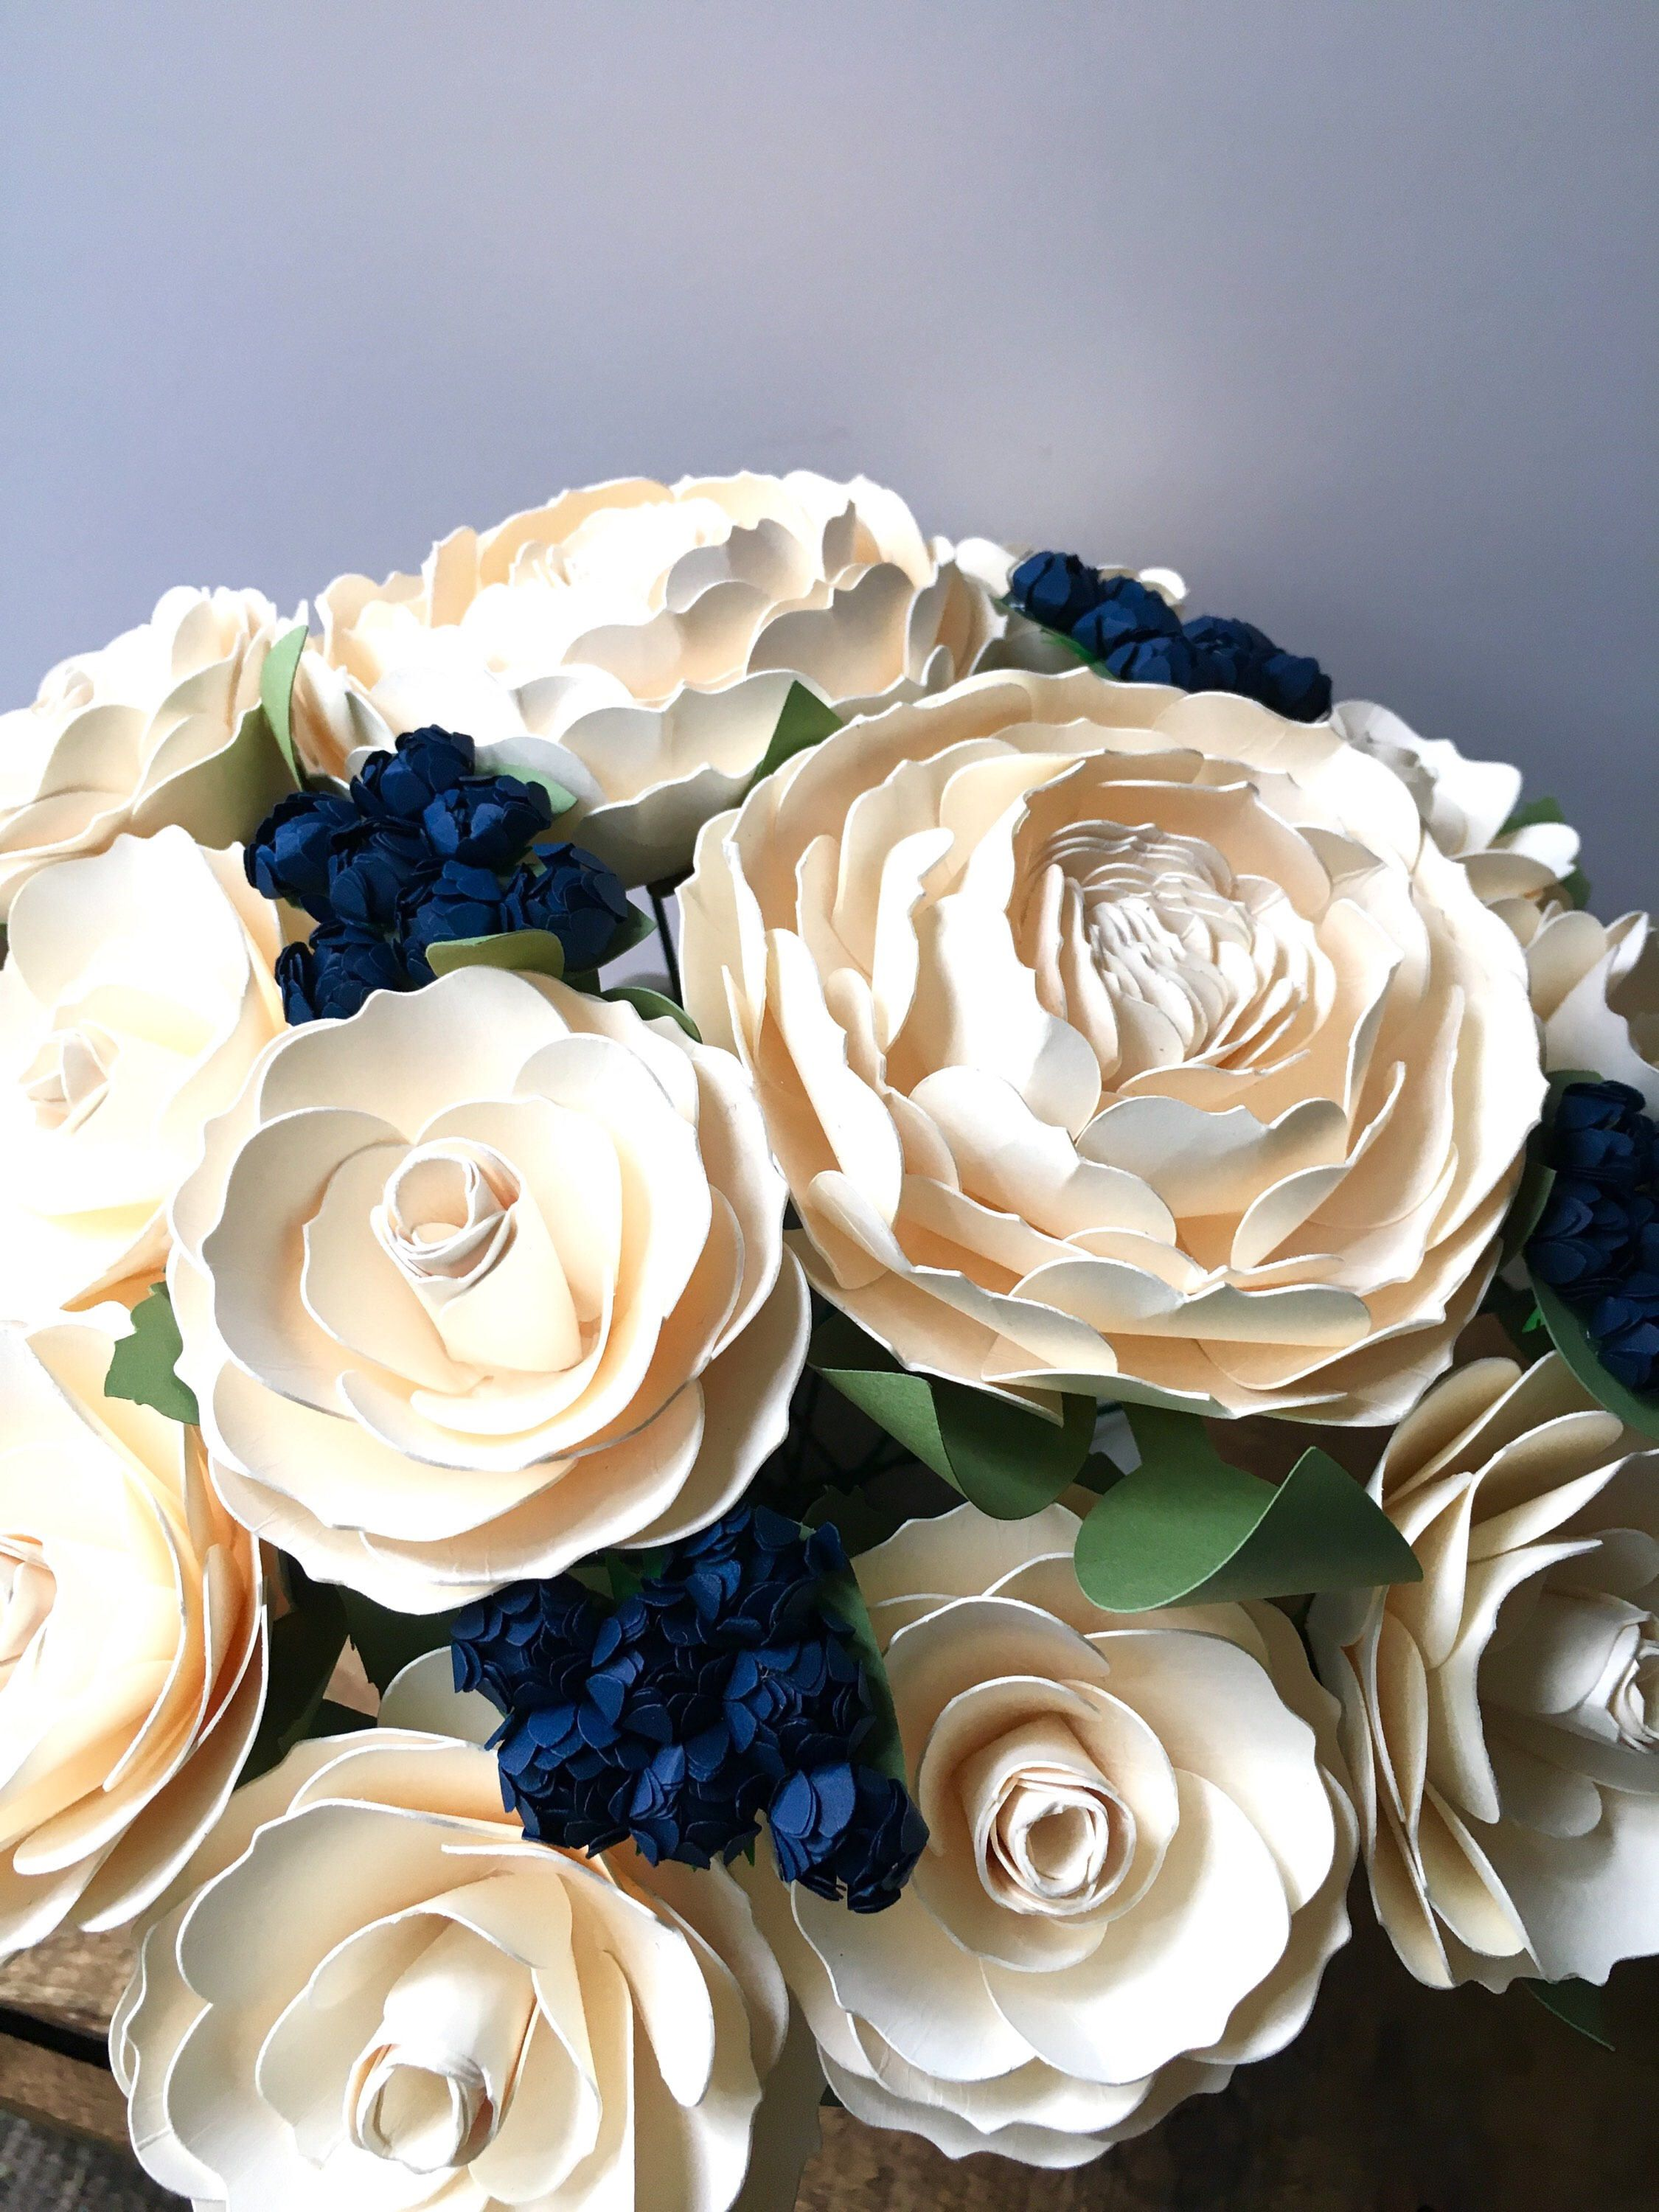 Excited to share the latest addition to my  etsy shop  Cream   Ivory and  Navy Blue Paper Flower Wedding Bouquet - Ranunculus - Roses - Paper Roses -  Bridal ... 2d6c7a62db9